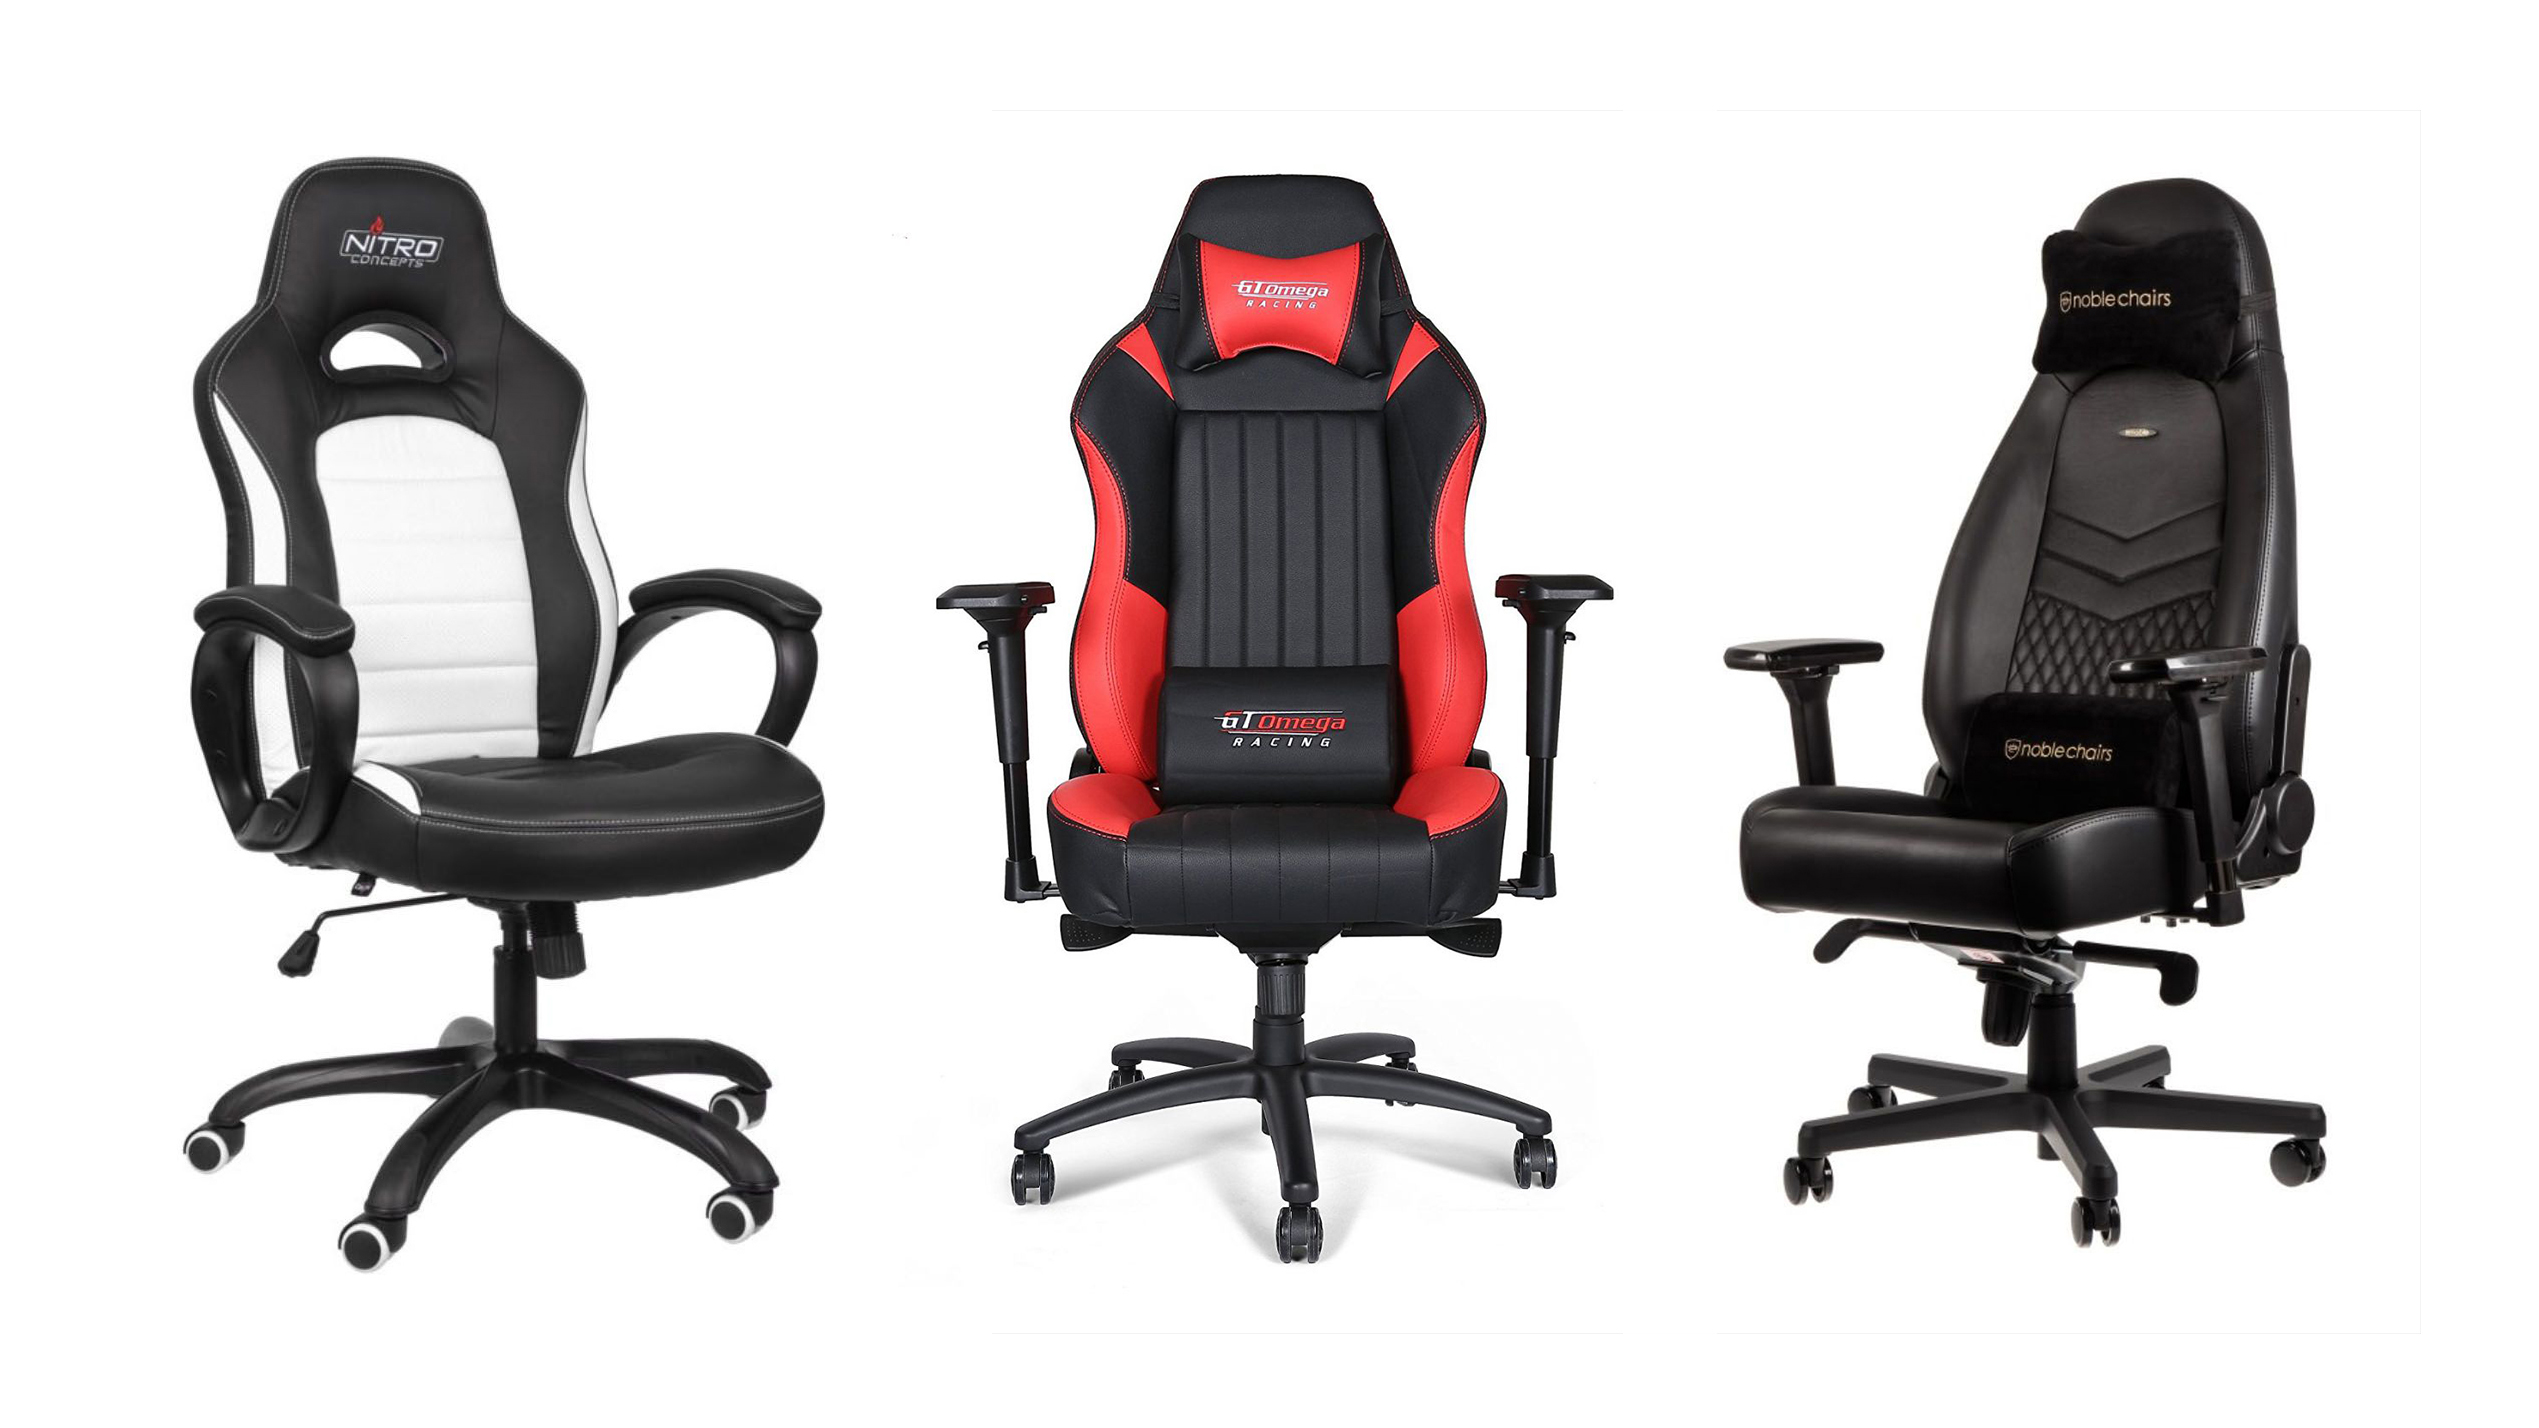 Gt Relax Racer Best Gaming Chairs 2019 T3 S Best Gaming Chair Picks From Pc